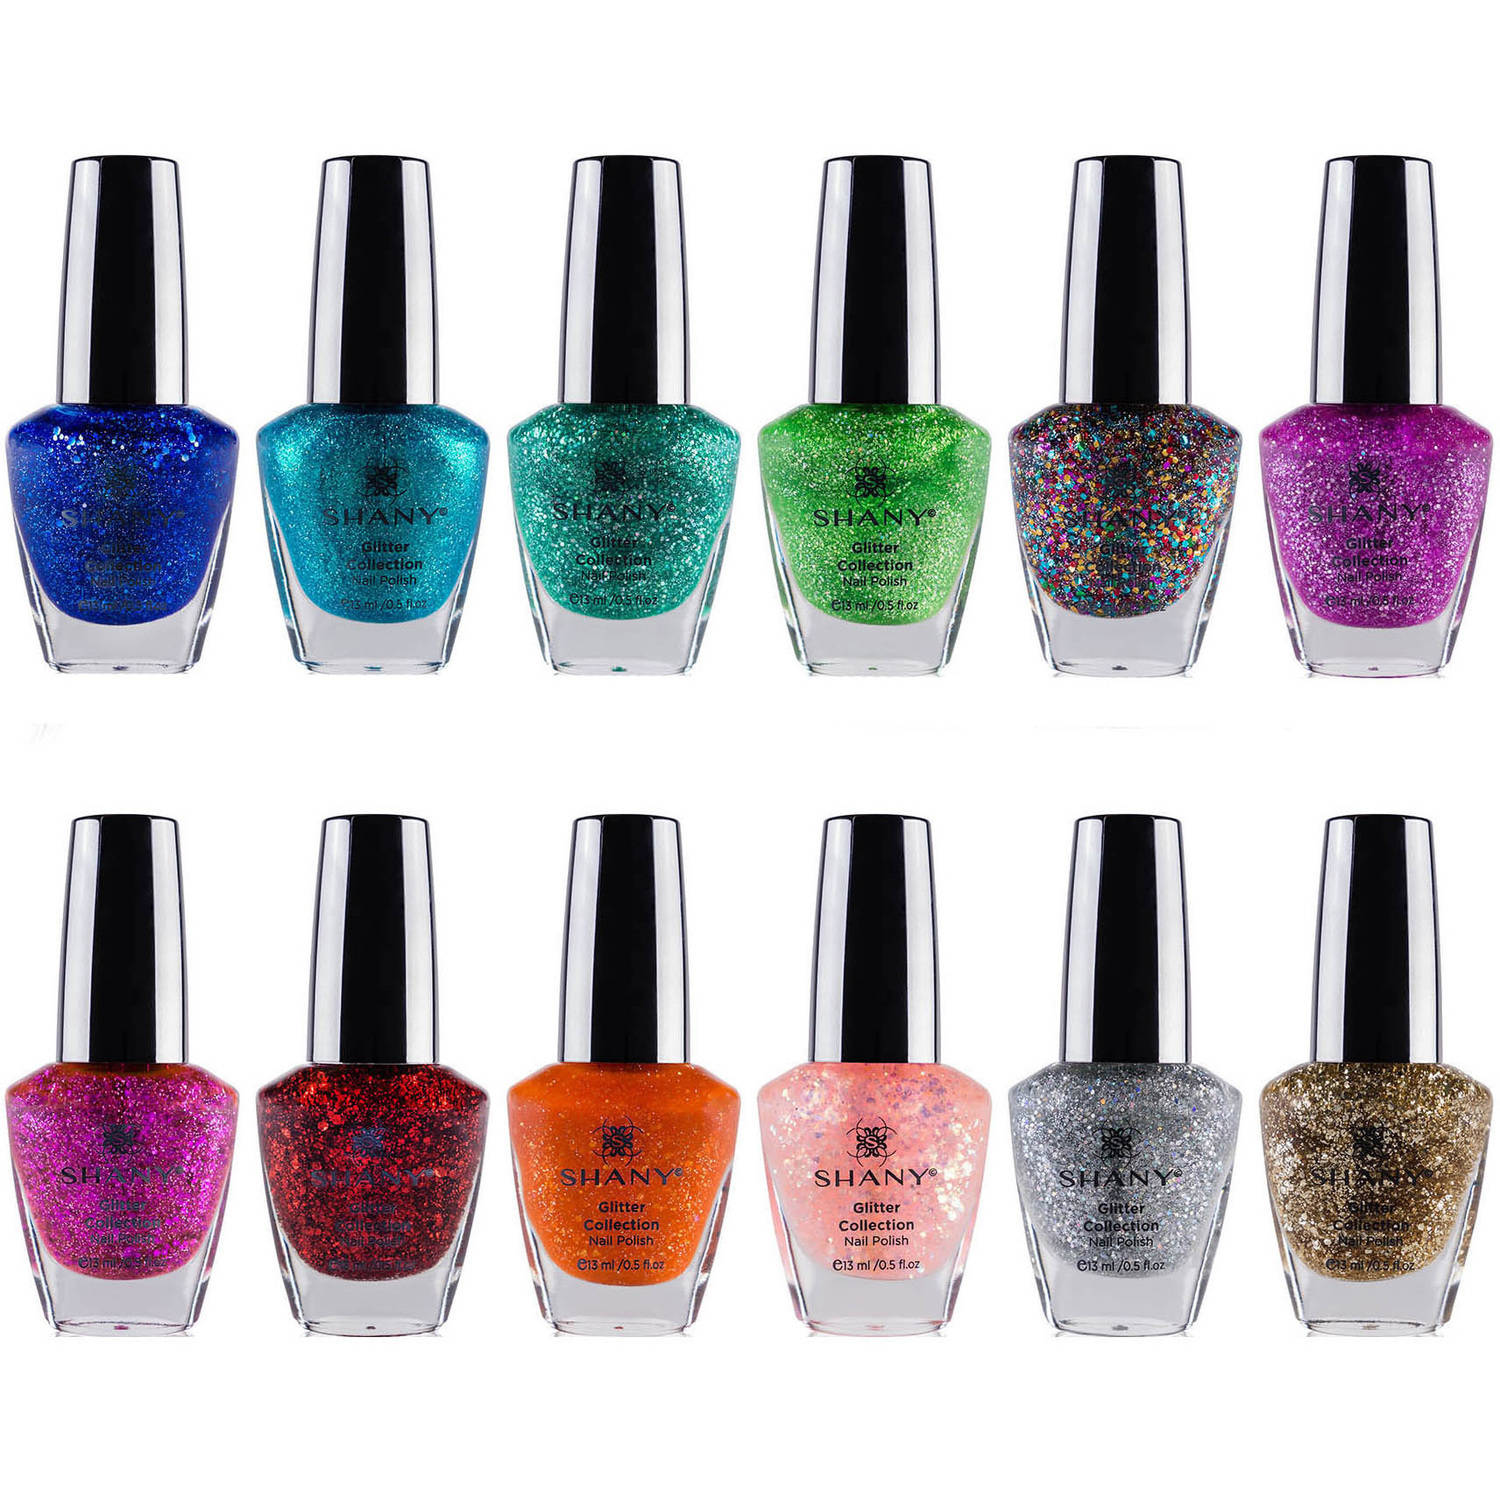 SHANY Glitter Collection Nail Polish Set, 12 count